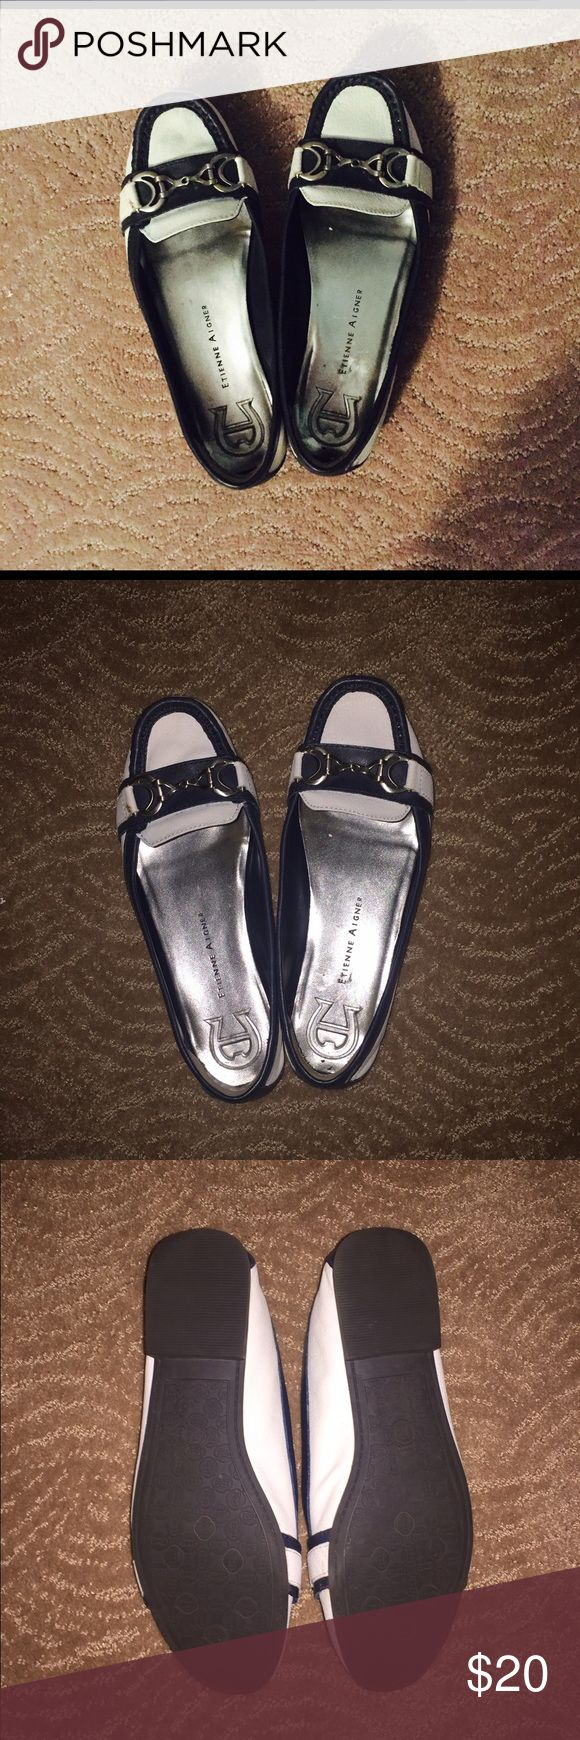 Navy Blue and White Aigner Loafers Navy Blue and White flat loafers. Rubber bottoms. Hardly worn- VERY NARROW. Etienne Aigner Shoes Flats & Loafers